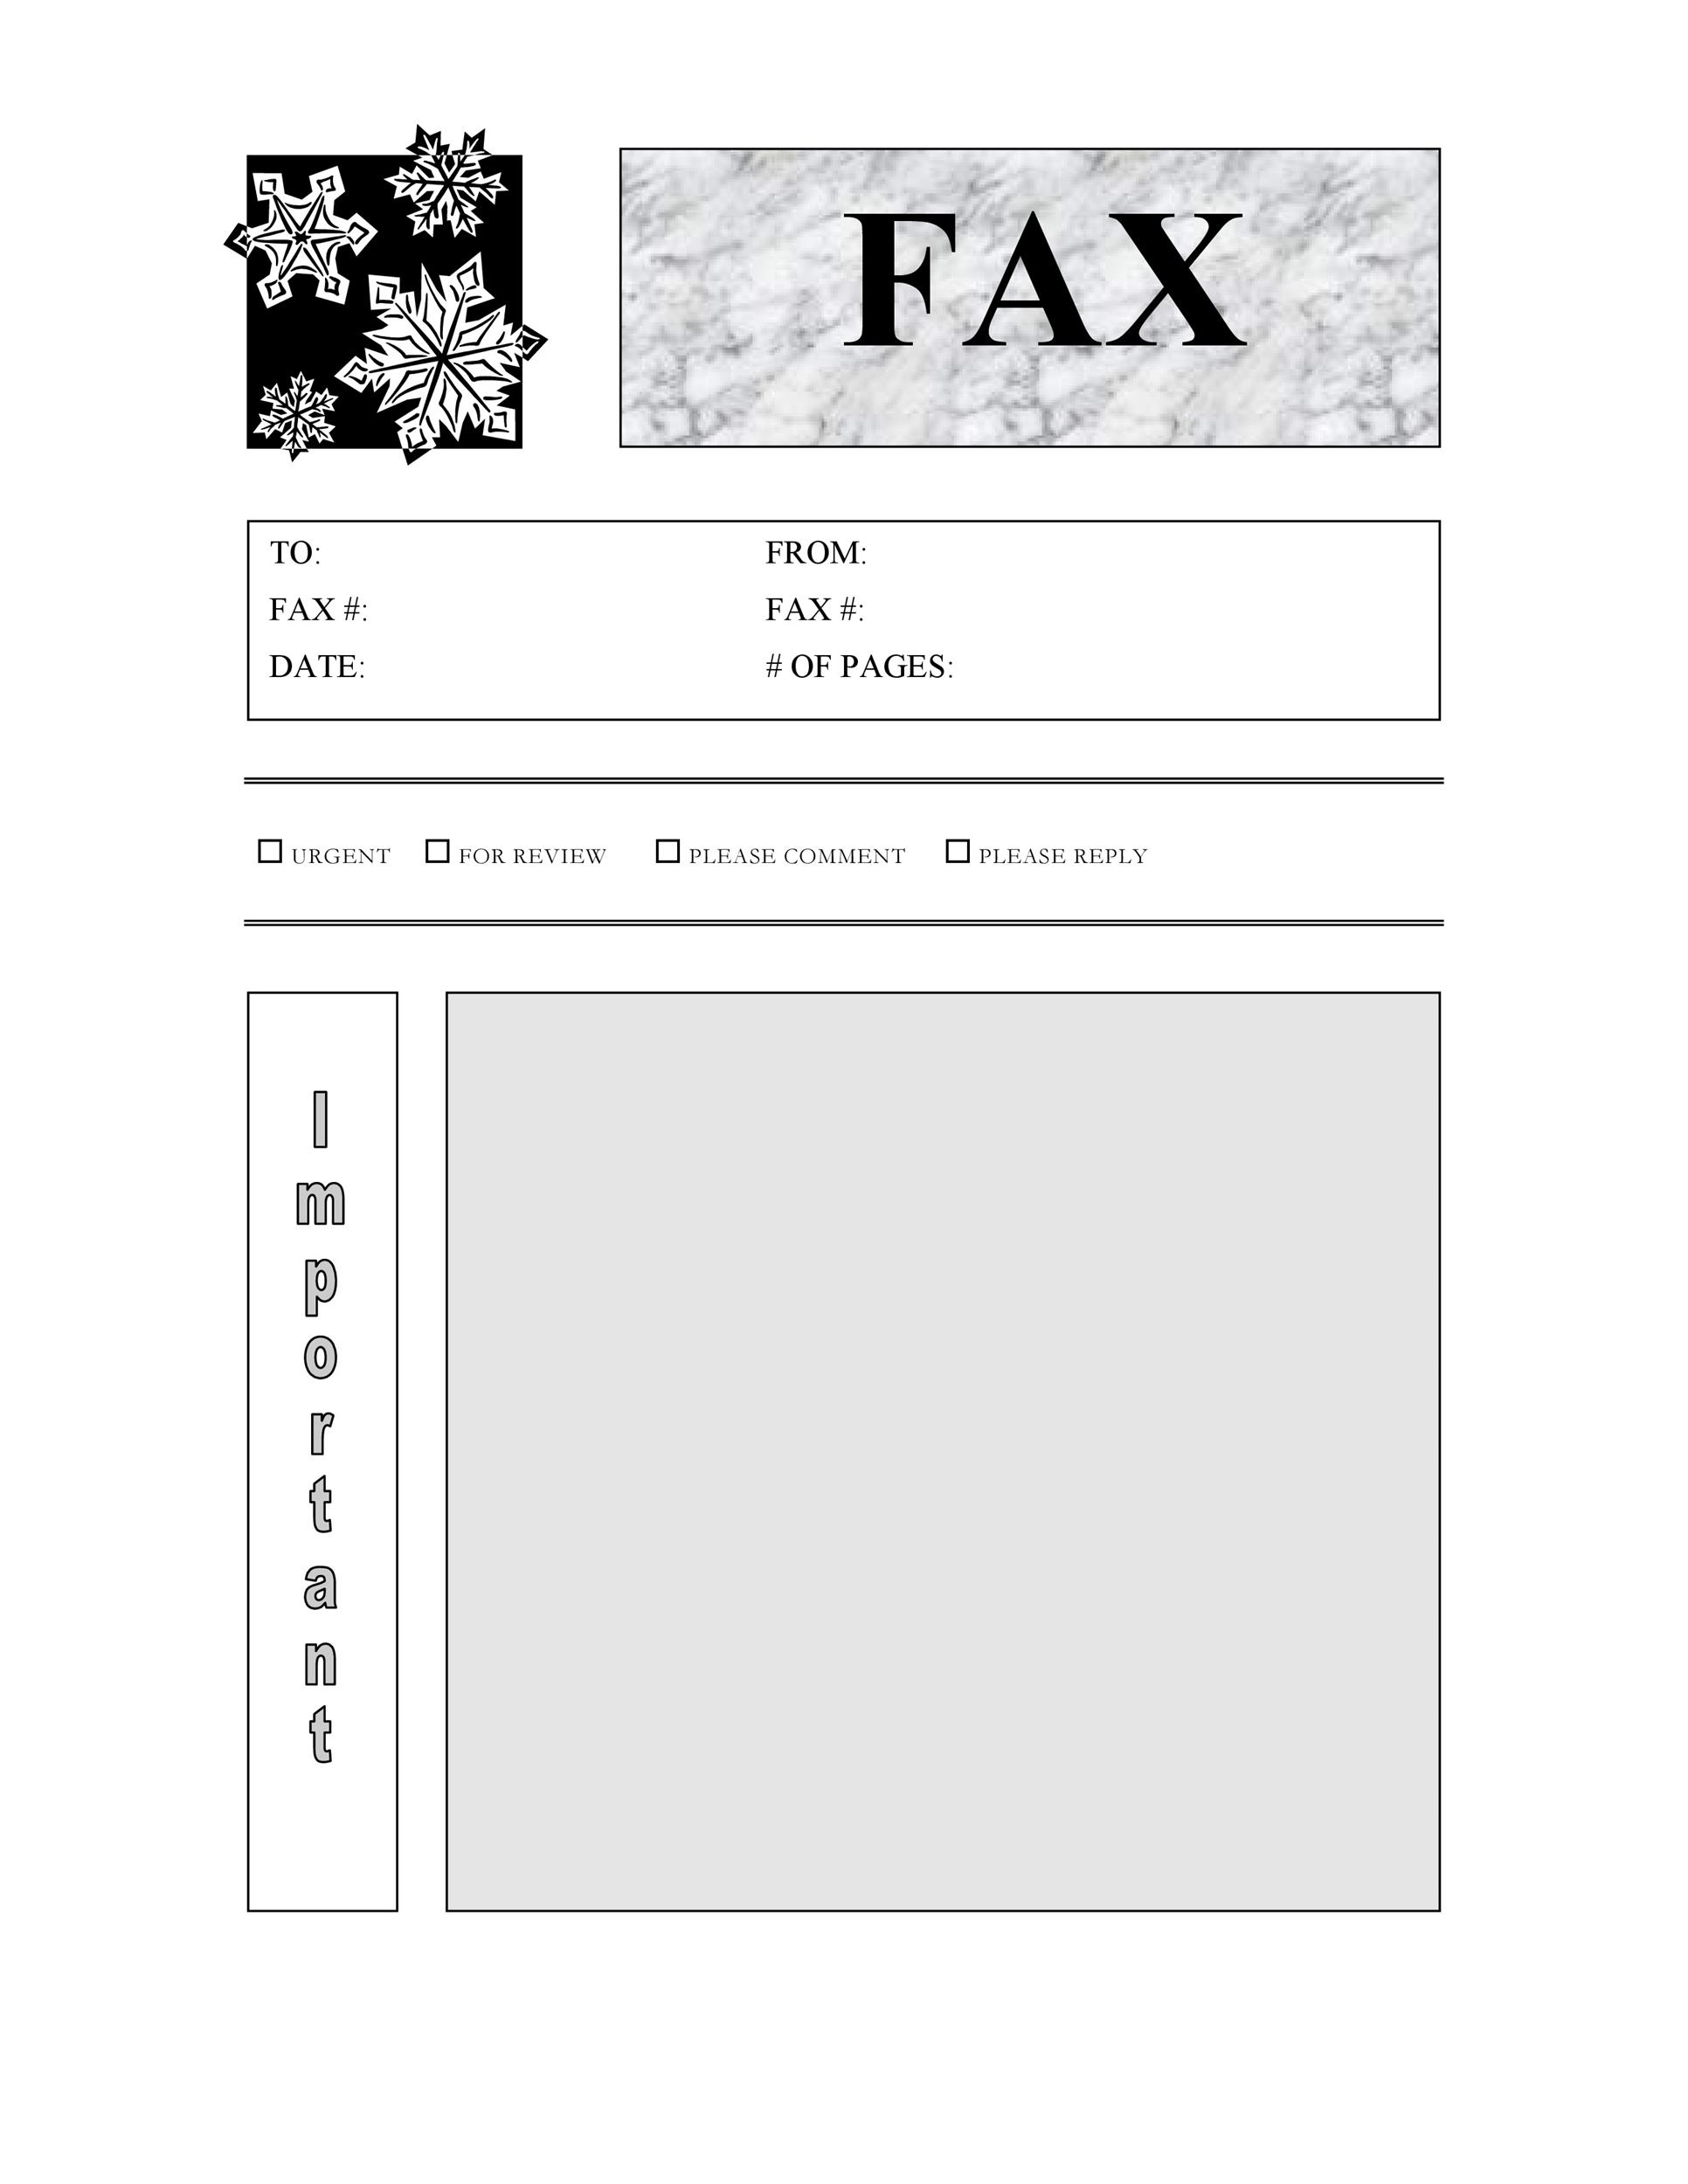 Fax Cover Sheet For Resume Strikingly Design Ideas Fax Cover Sheet